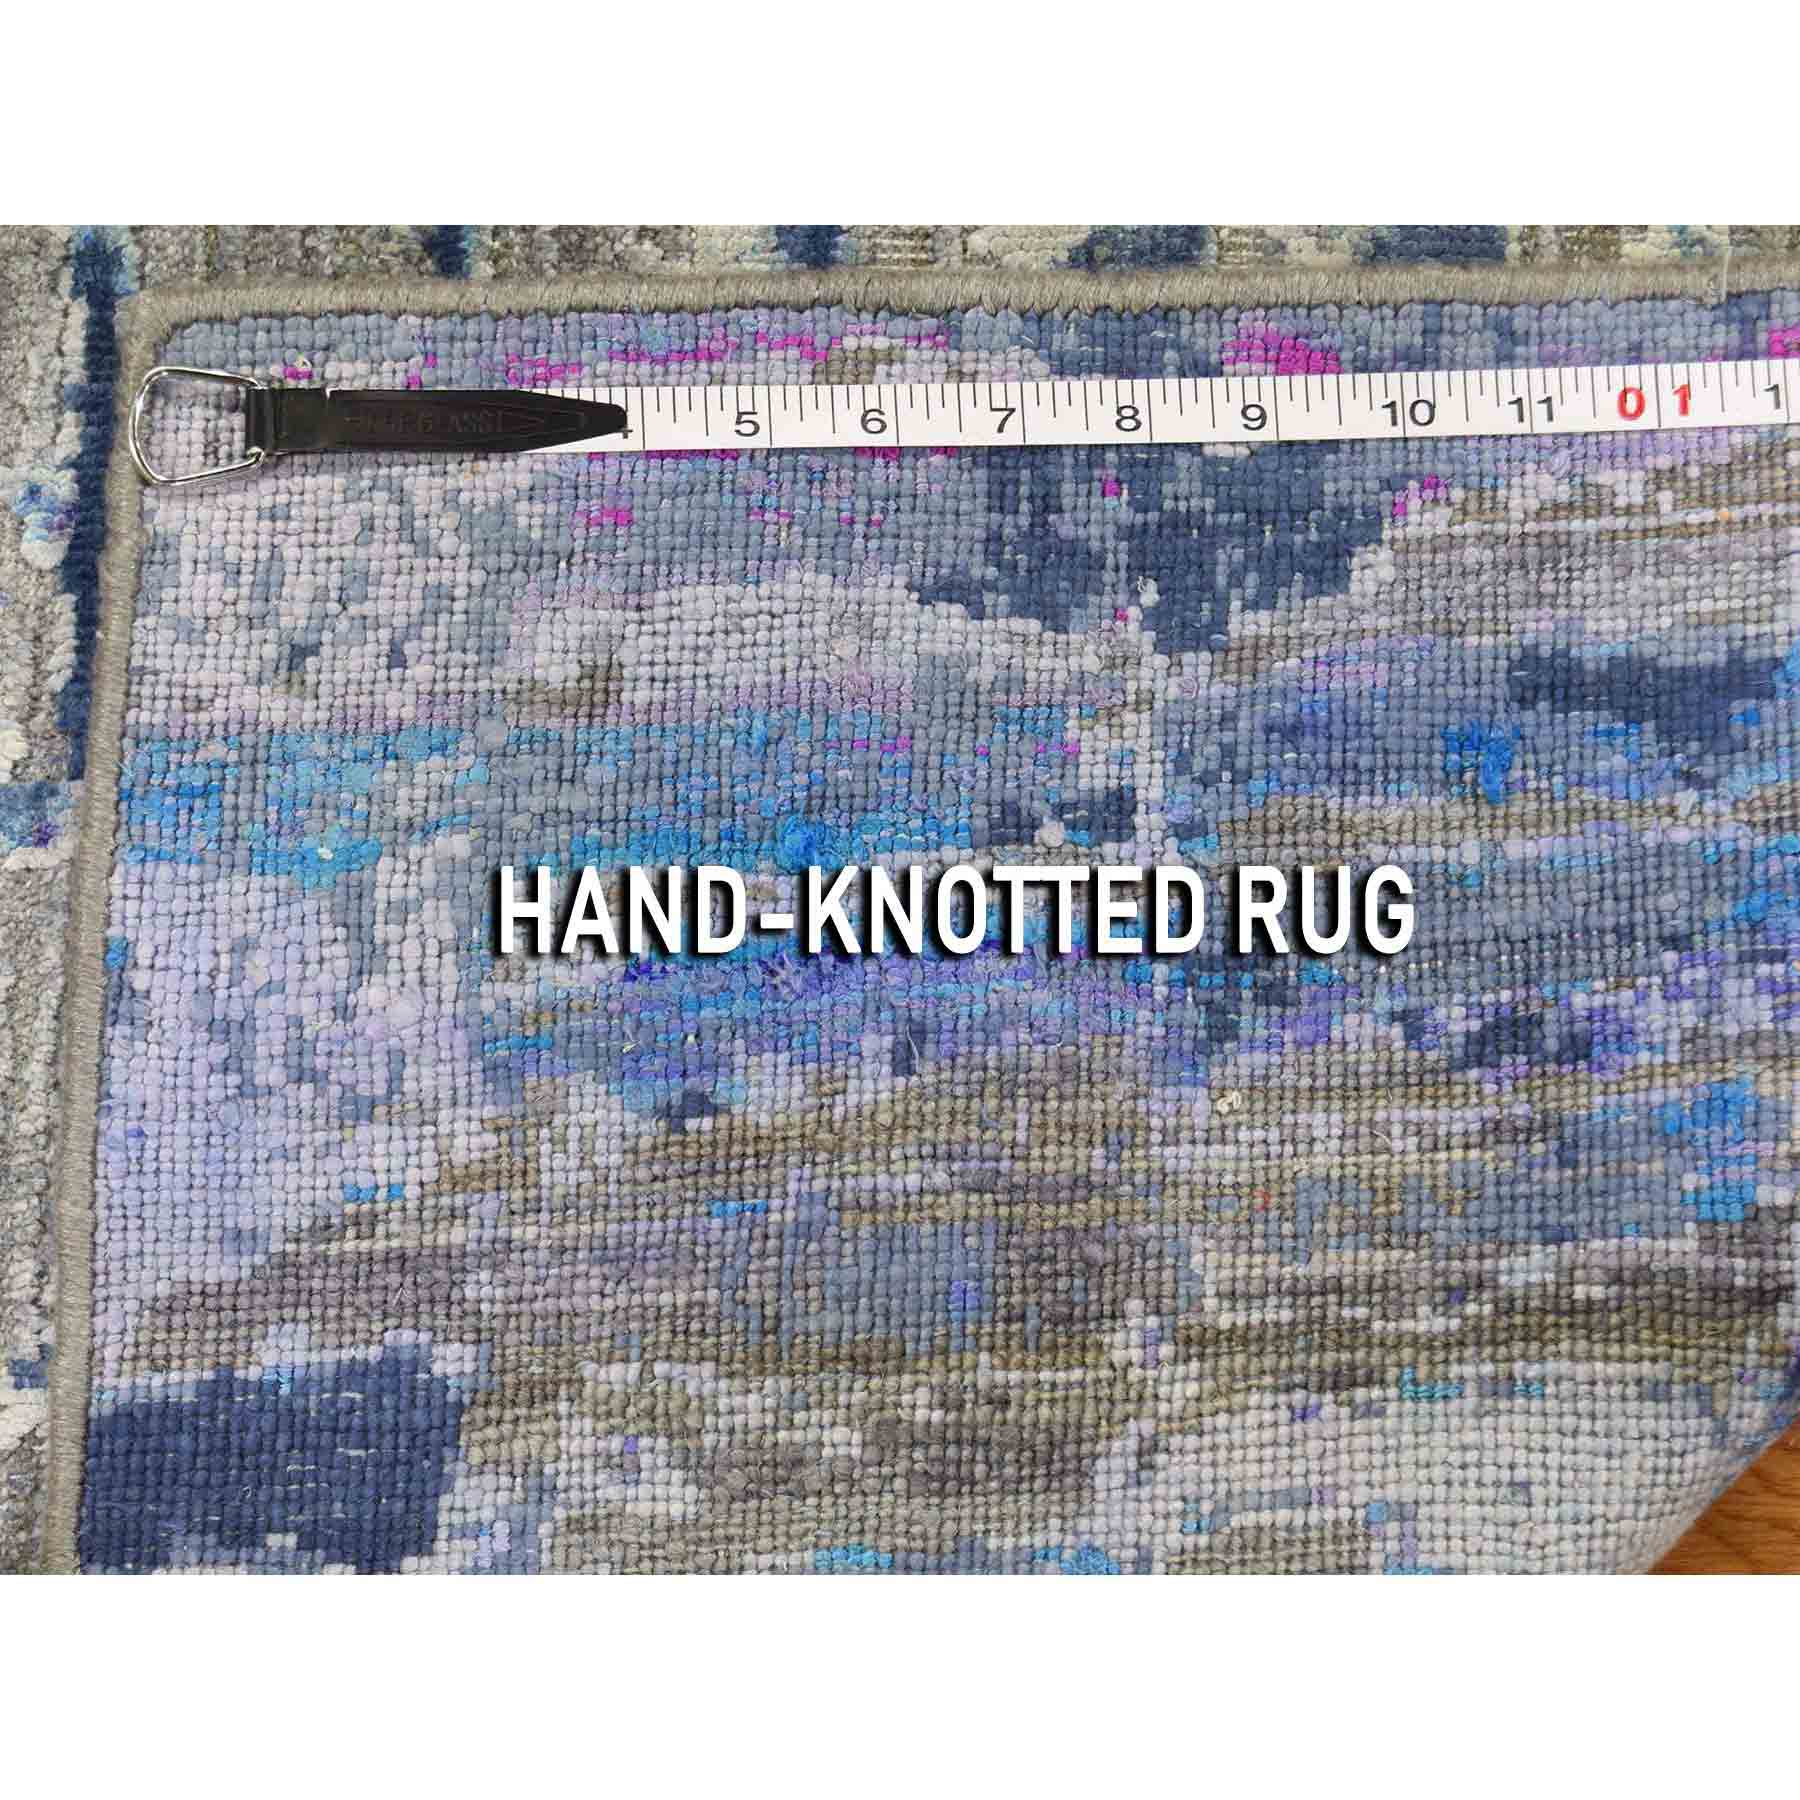 Modern-and-Contemporary-Hand-Knotted-Rug-223280